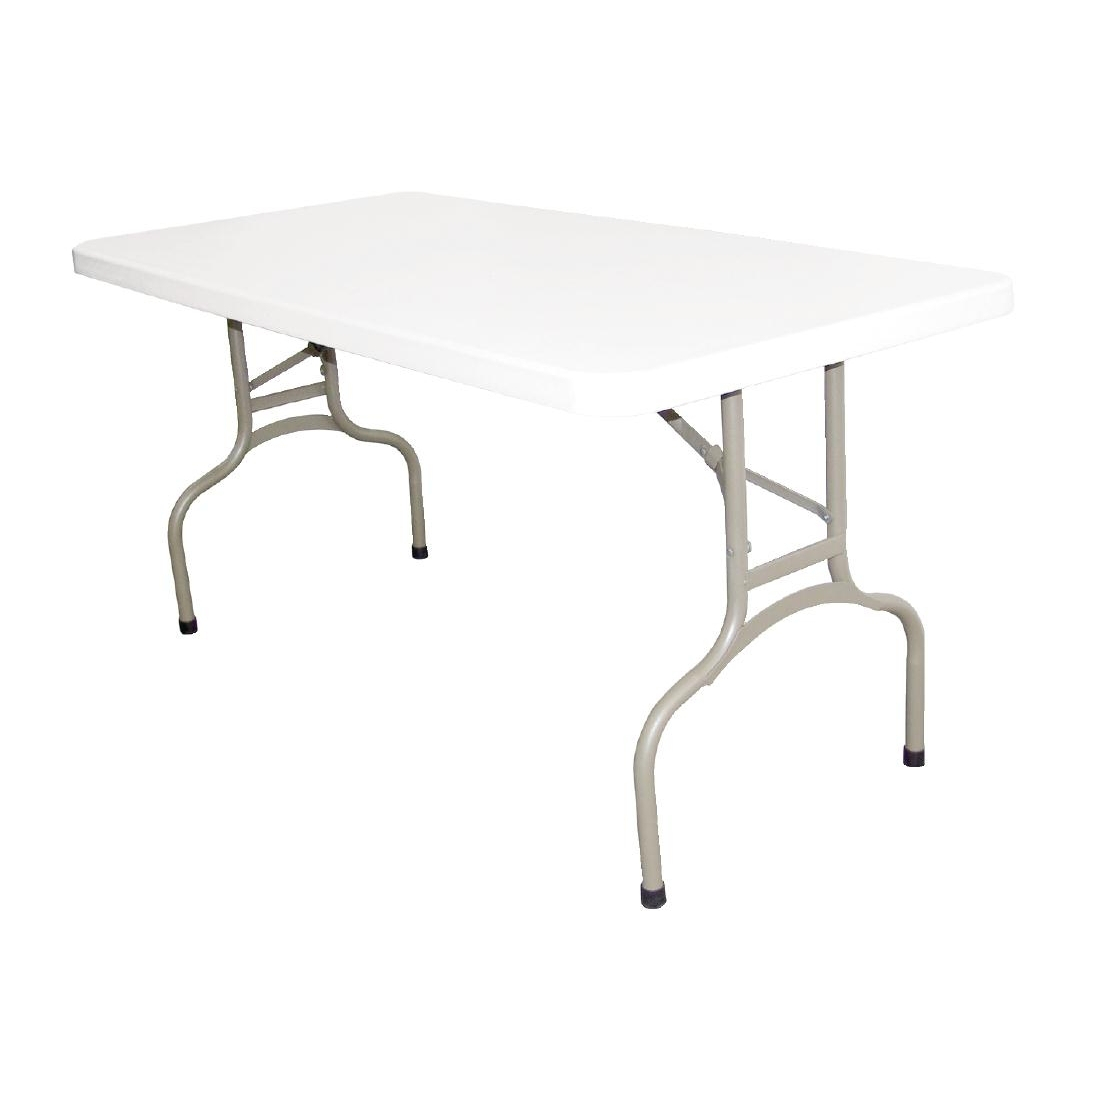 Bolero Foldaway Rectangular Utility Table